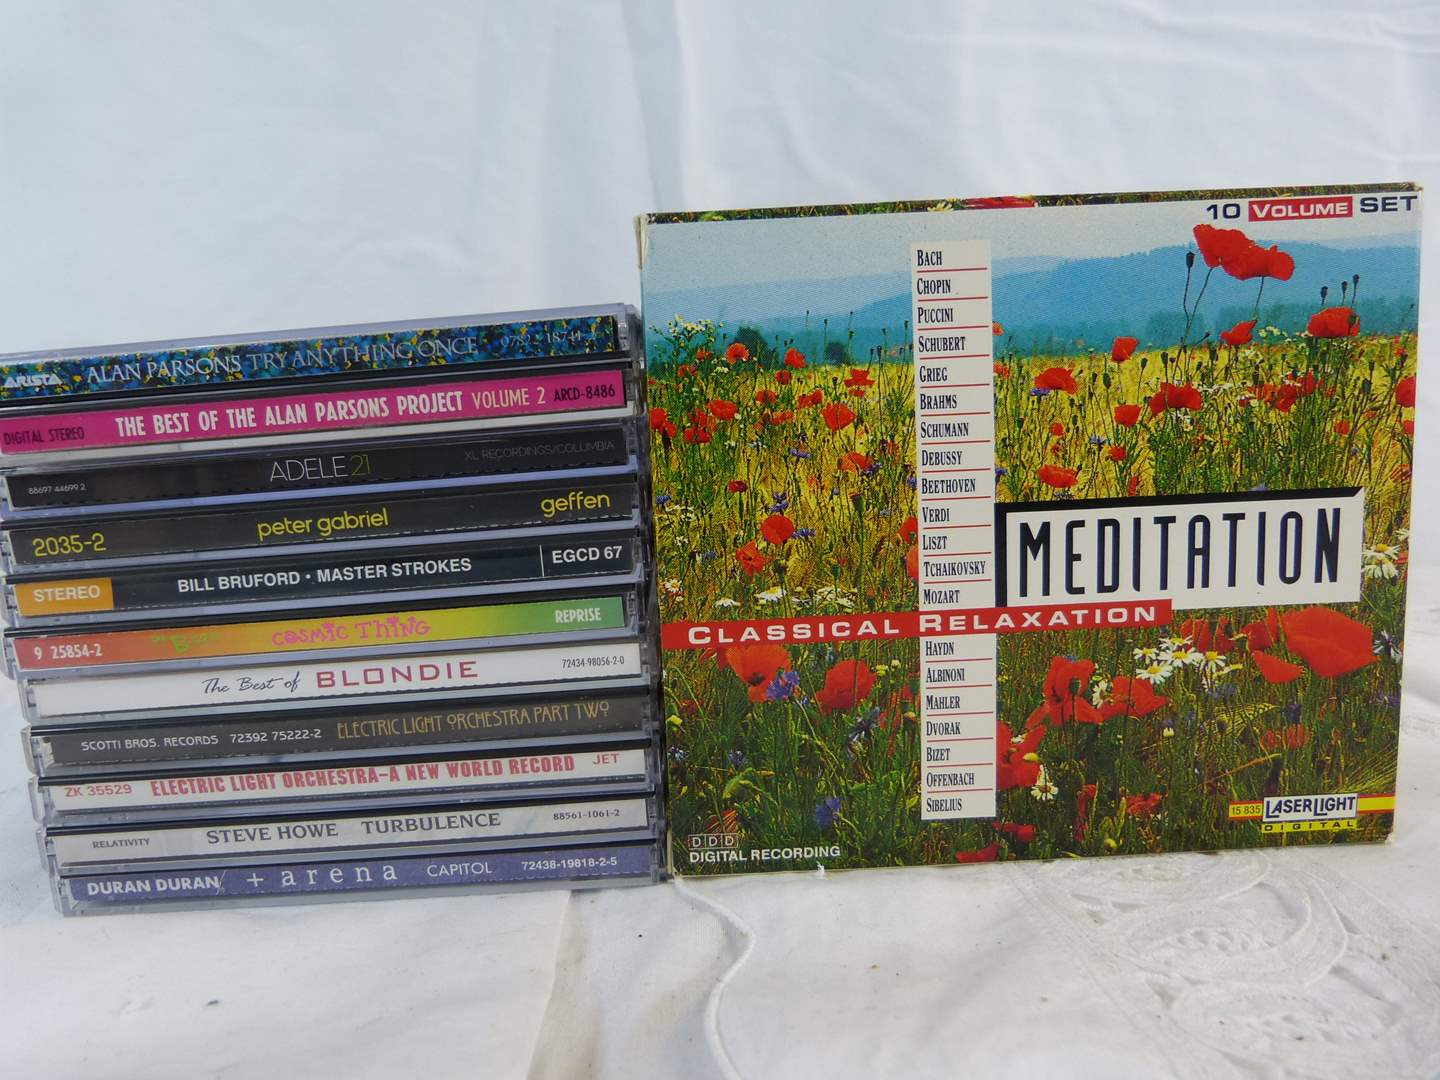 Lot # 10 Nice group of CD's to include set of Meditation CD's (main image)